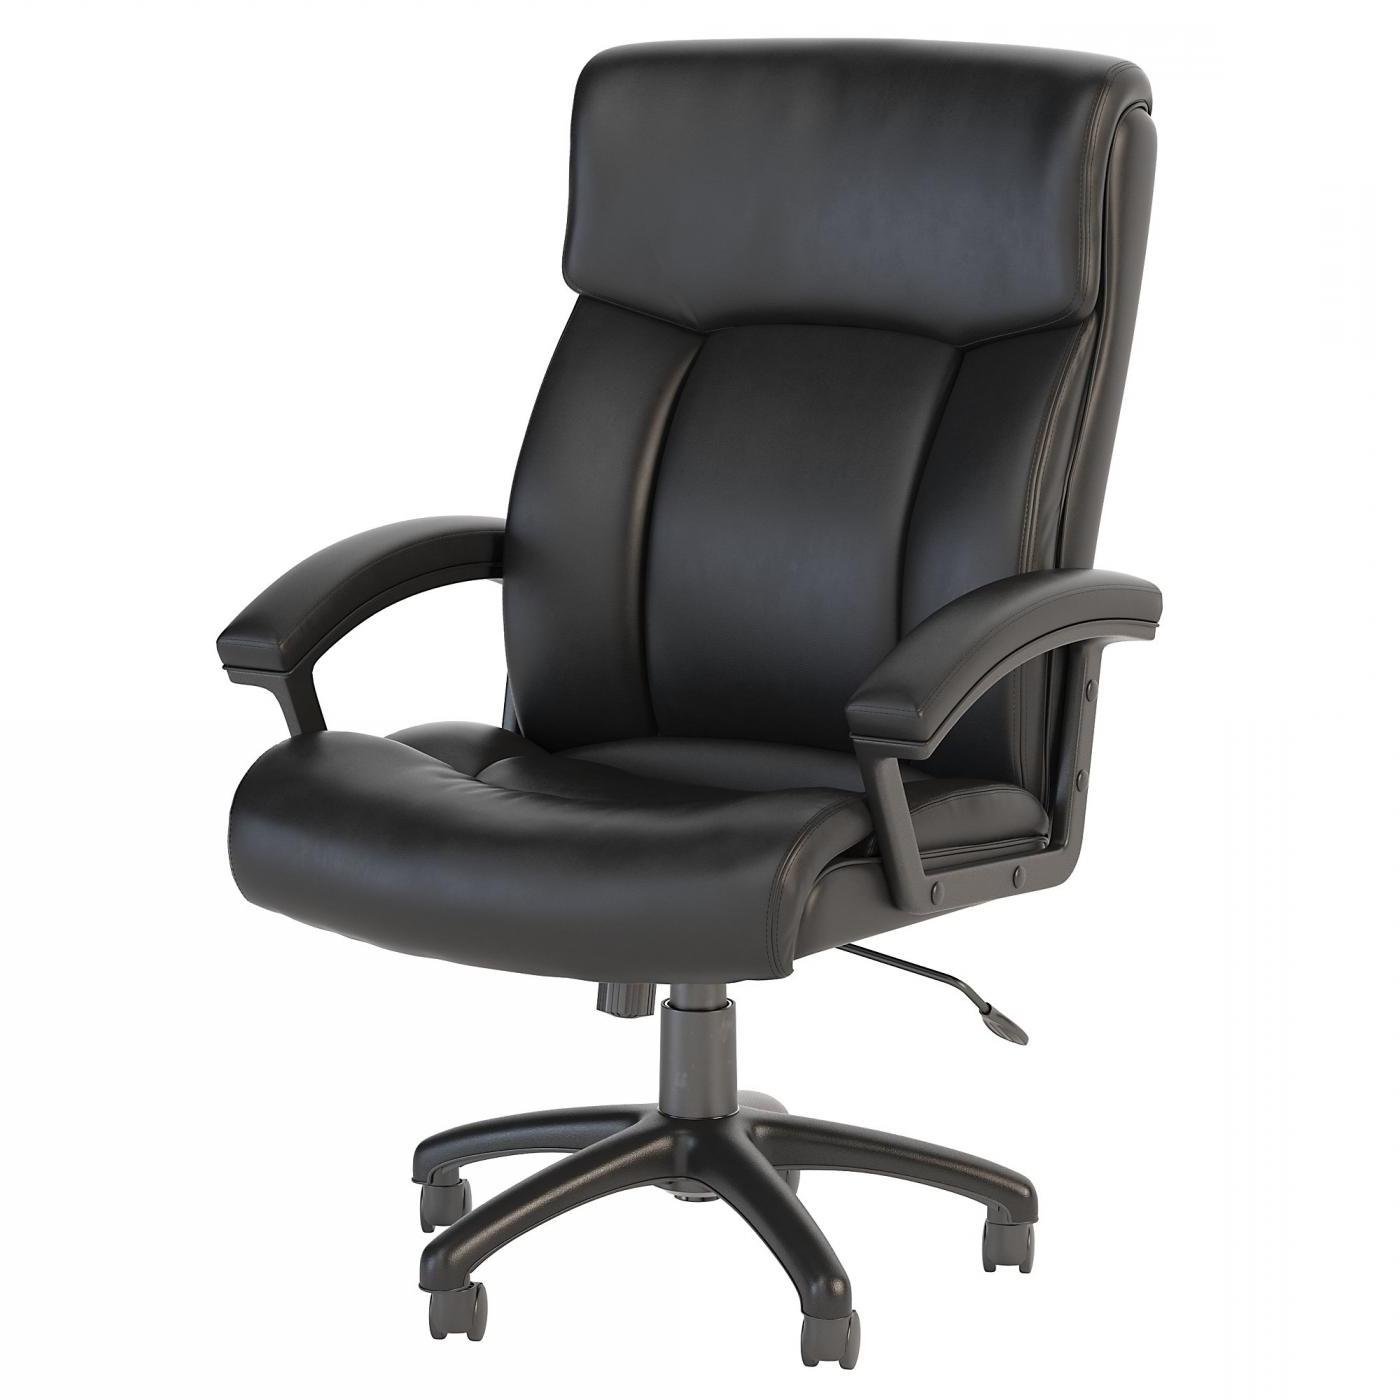 <font color=#c60><b>BUSH BUSINESS FURNITURE STANTON PLUS HIGH BACK LEATHER EXECUTIVE OFFICE CHAIR. FREE SHIPPING</font></b> </font></b></font></b>